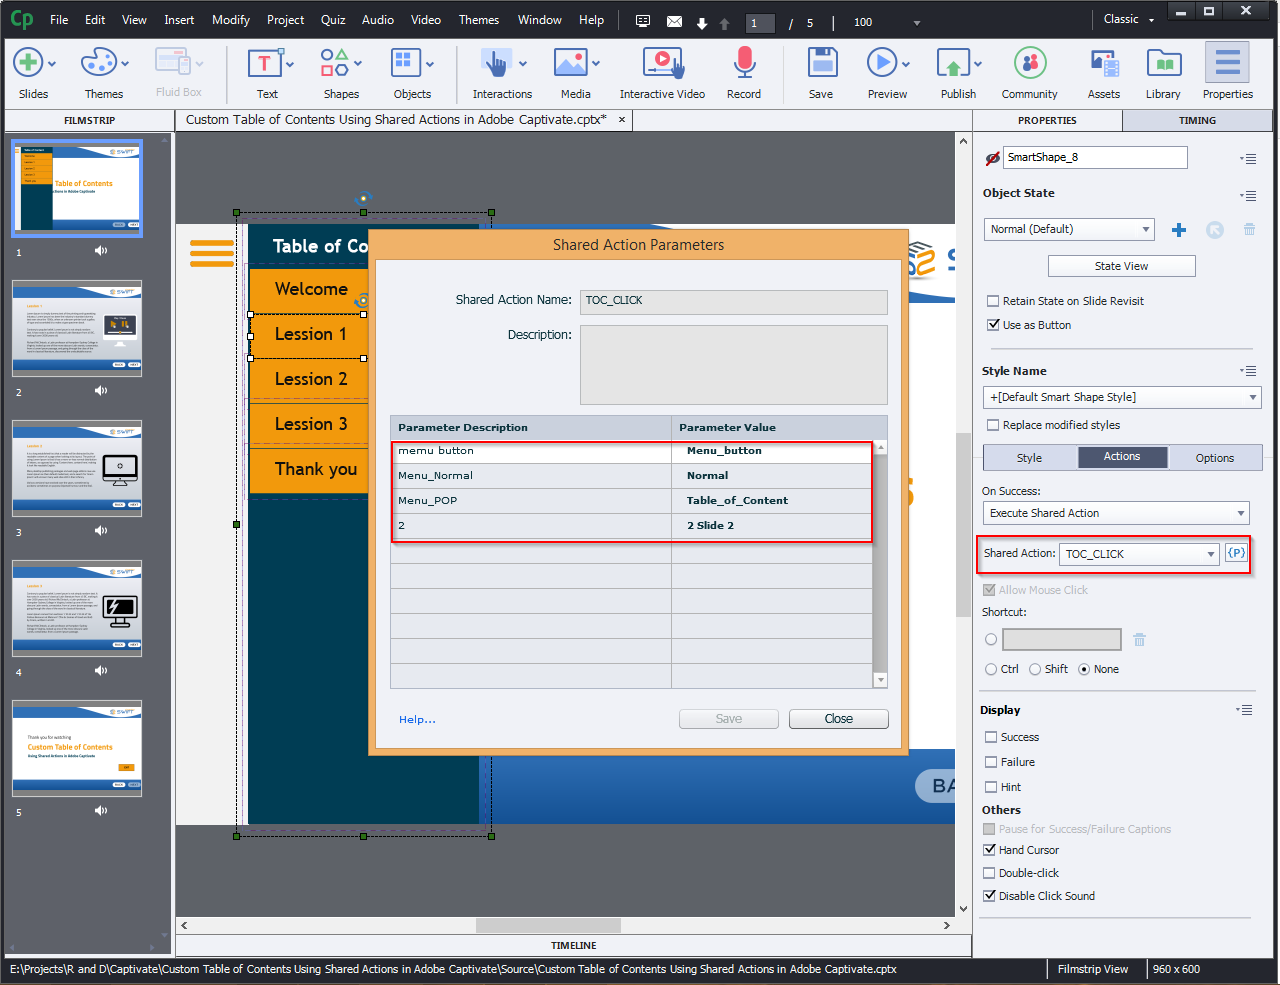 Contents Using Shared Actions in Adobe Captivate 2019 11